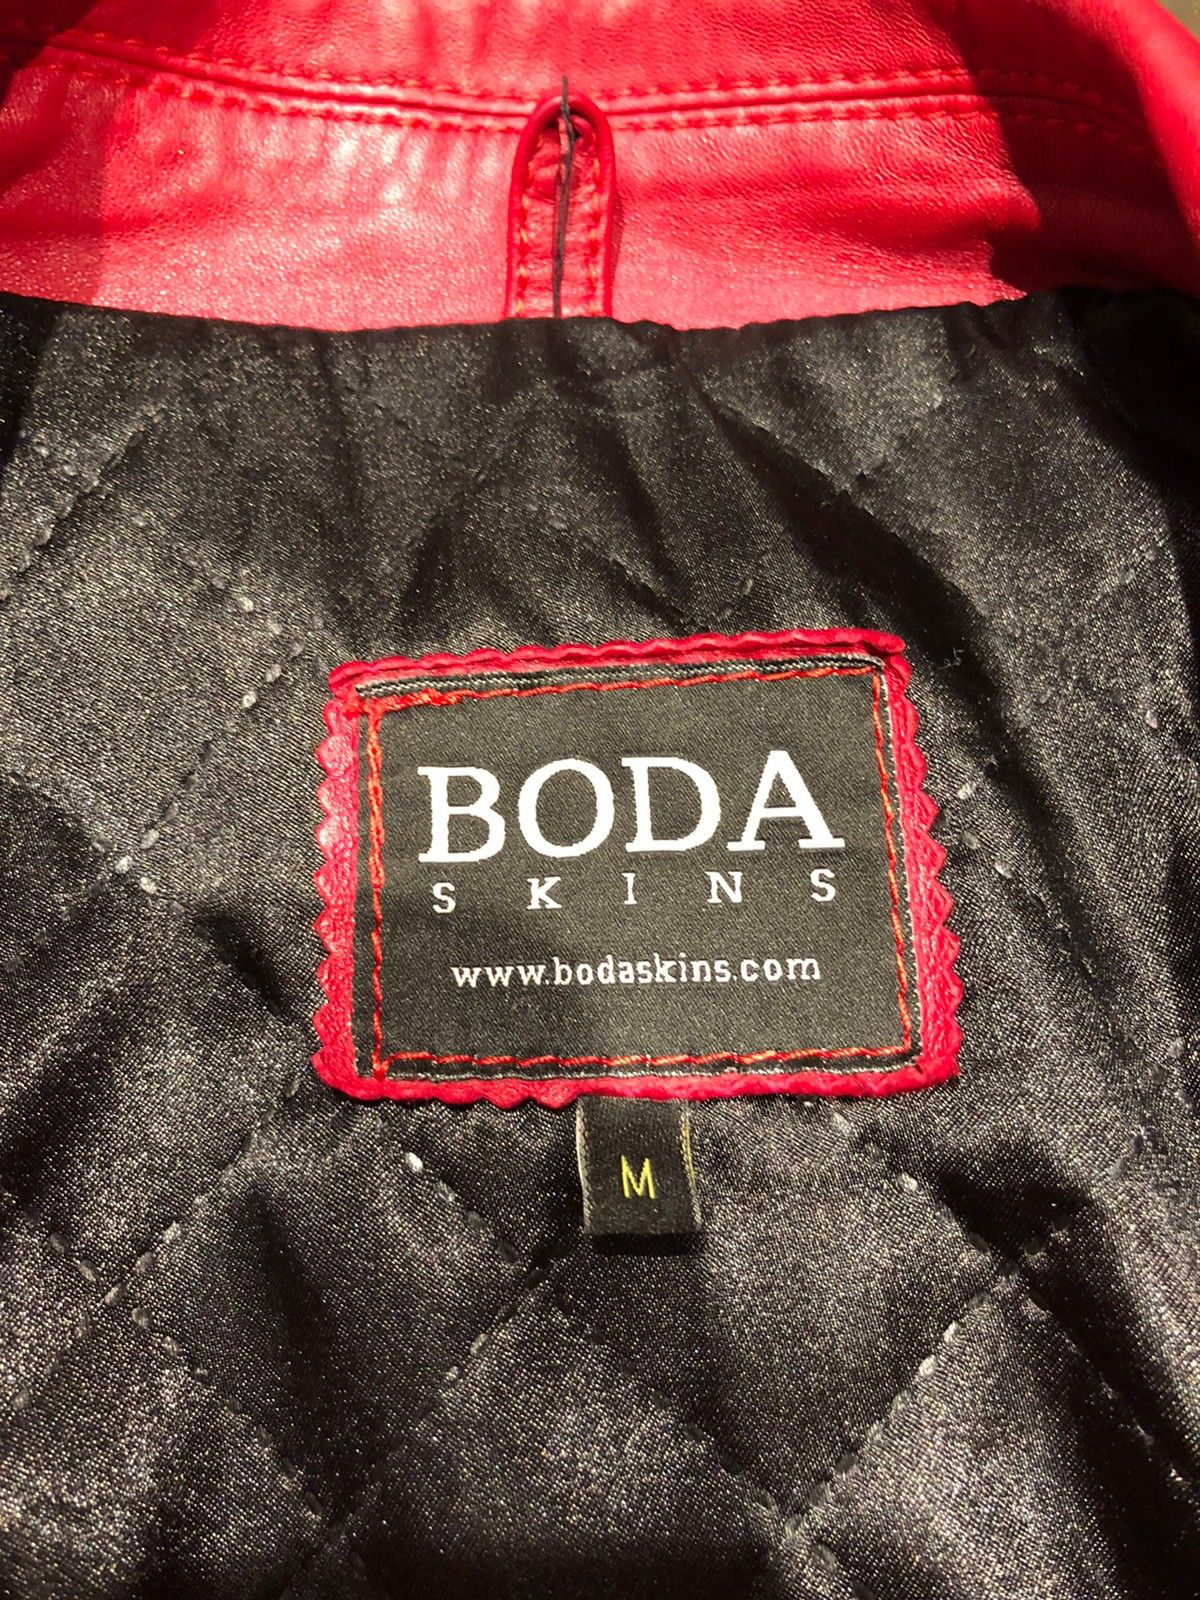 Red Leather Jacket Png Pic Red Leather Jacket Boda Skins